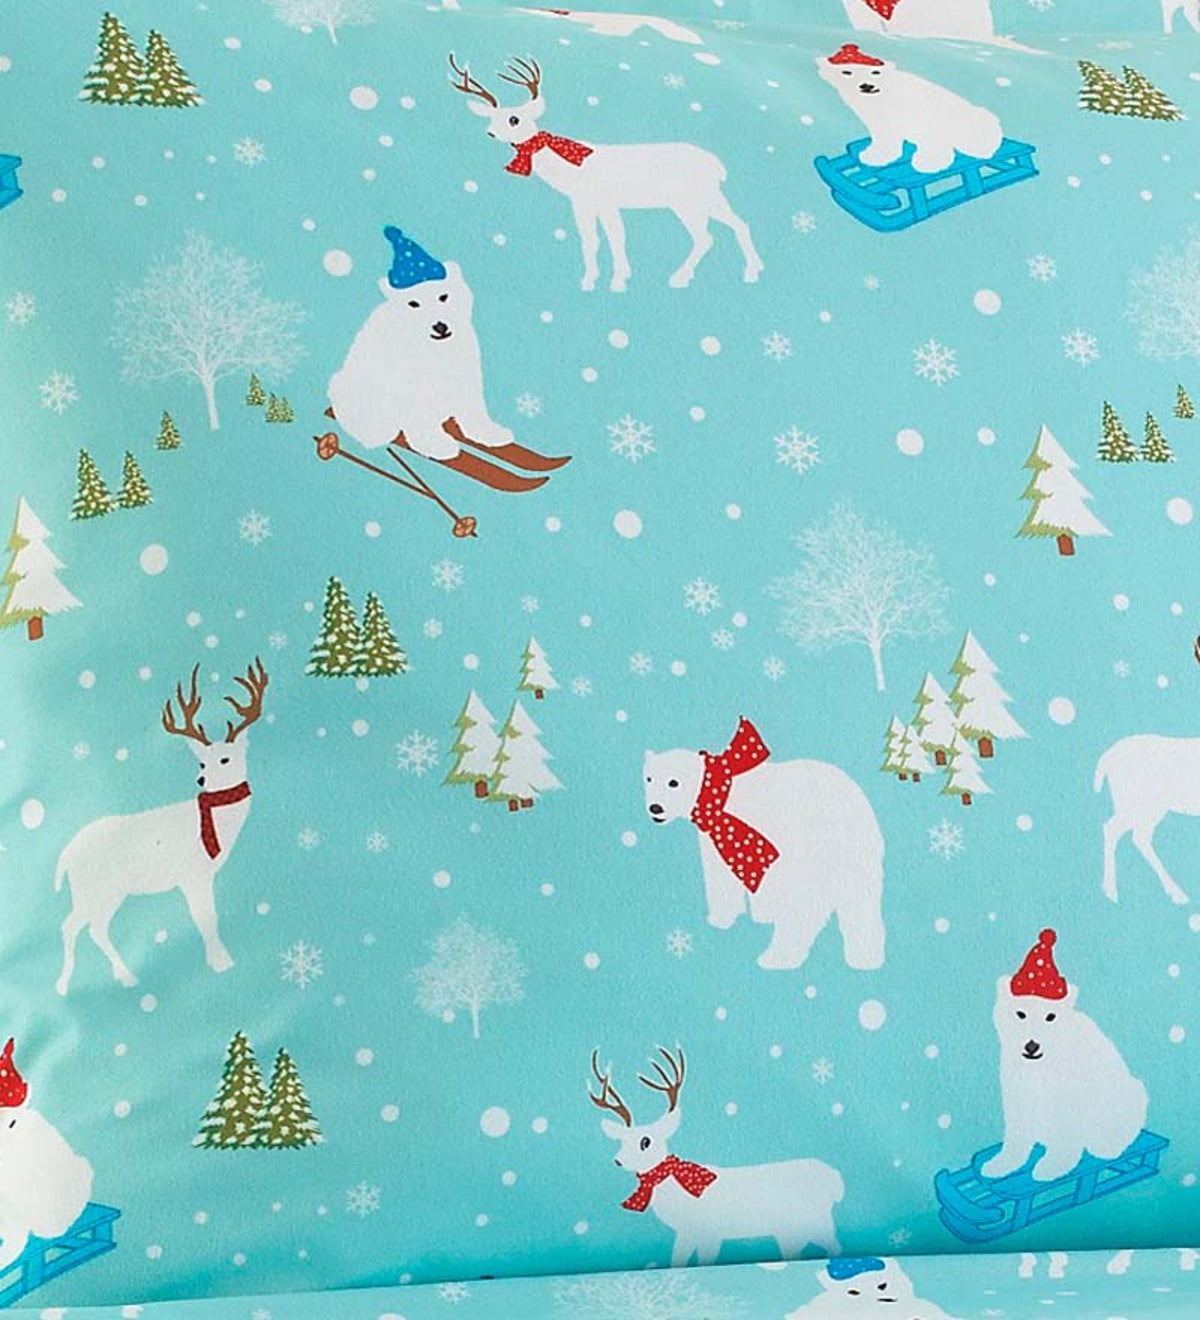 Full Fun in the Snow Microflannel® Sheet Set